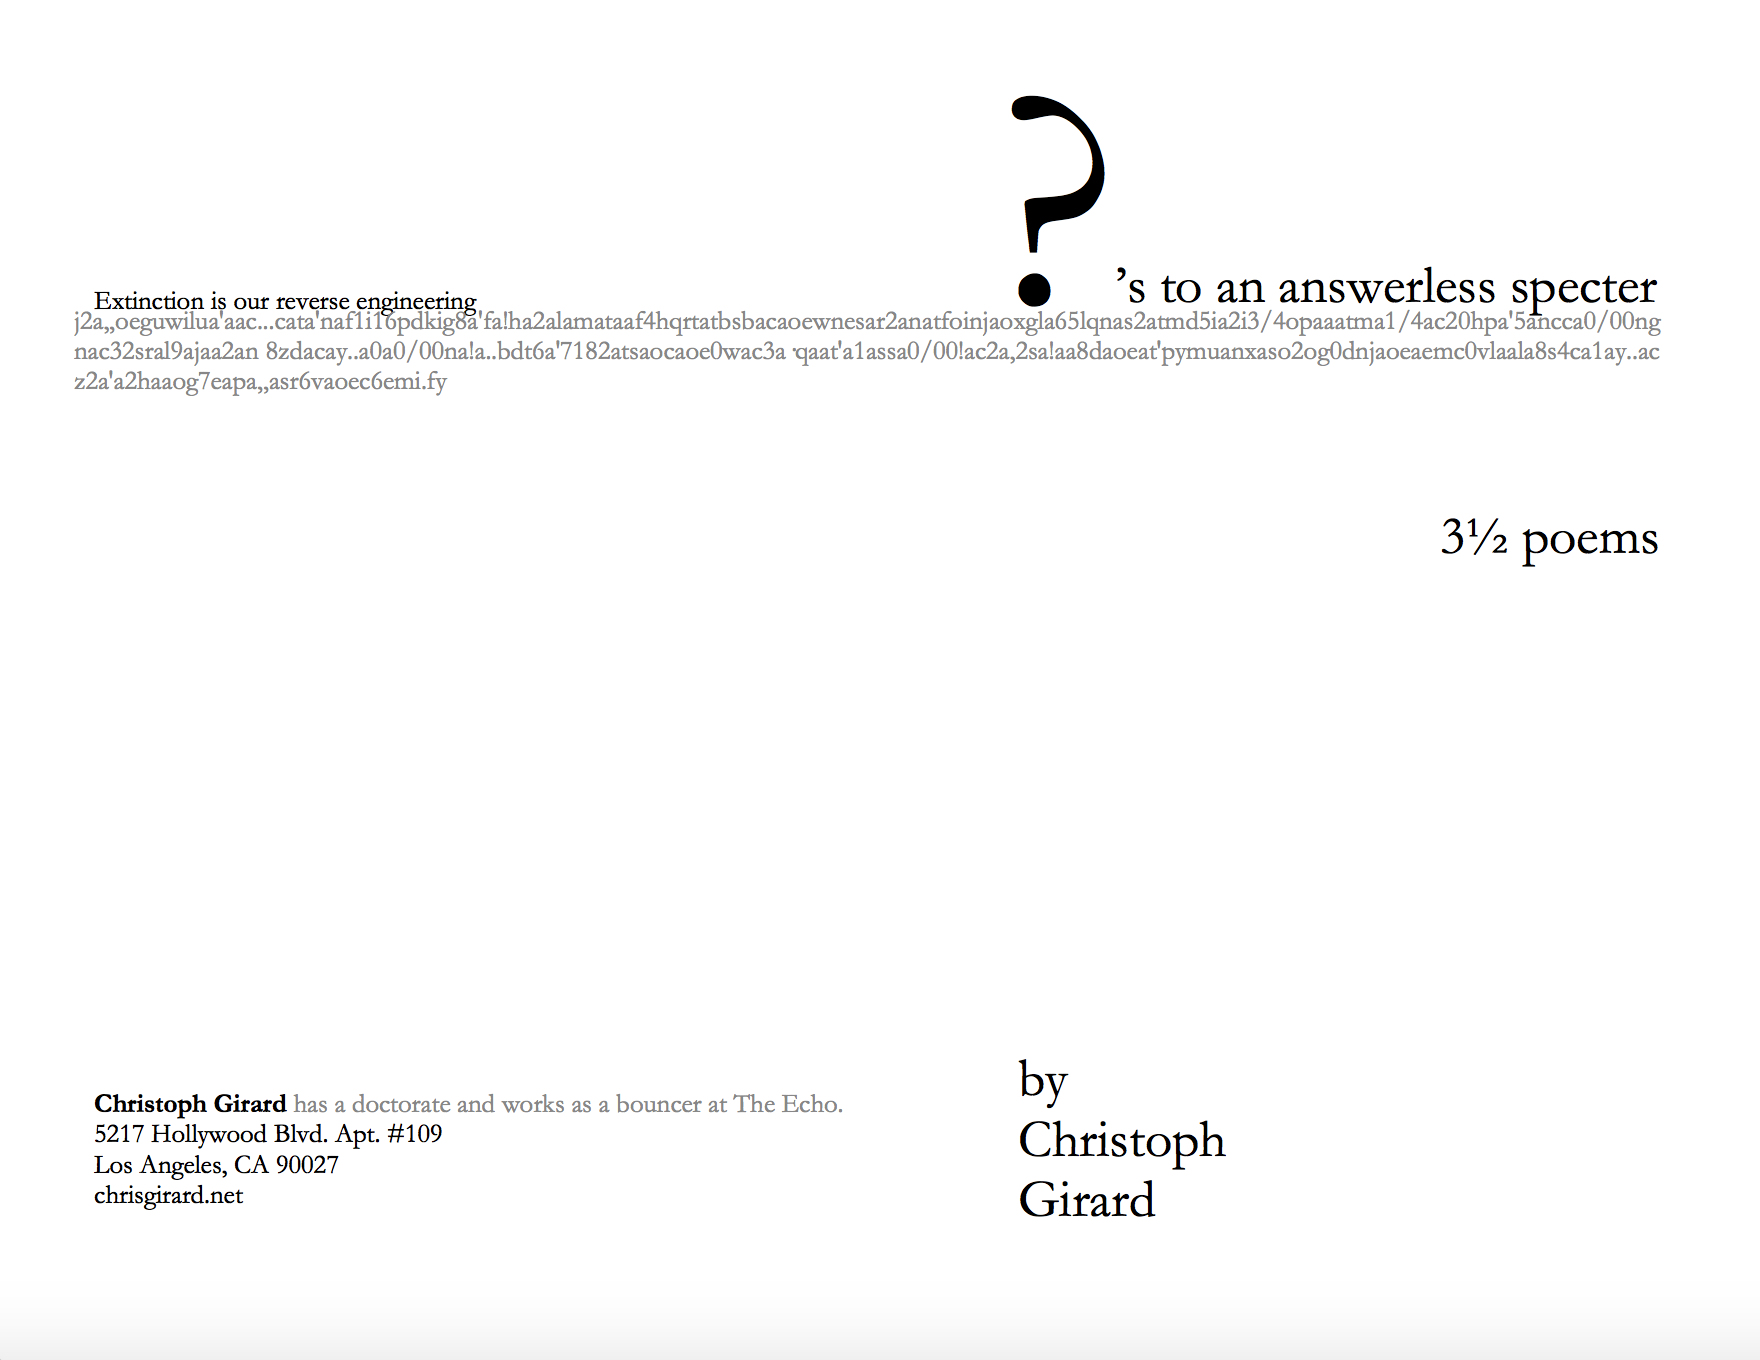 Questions to an Answerless Specter, collage poems by Chris Girard